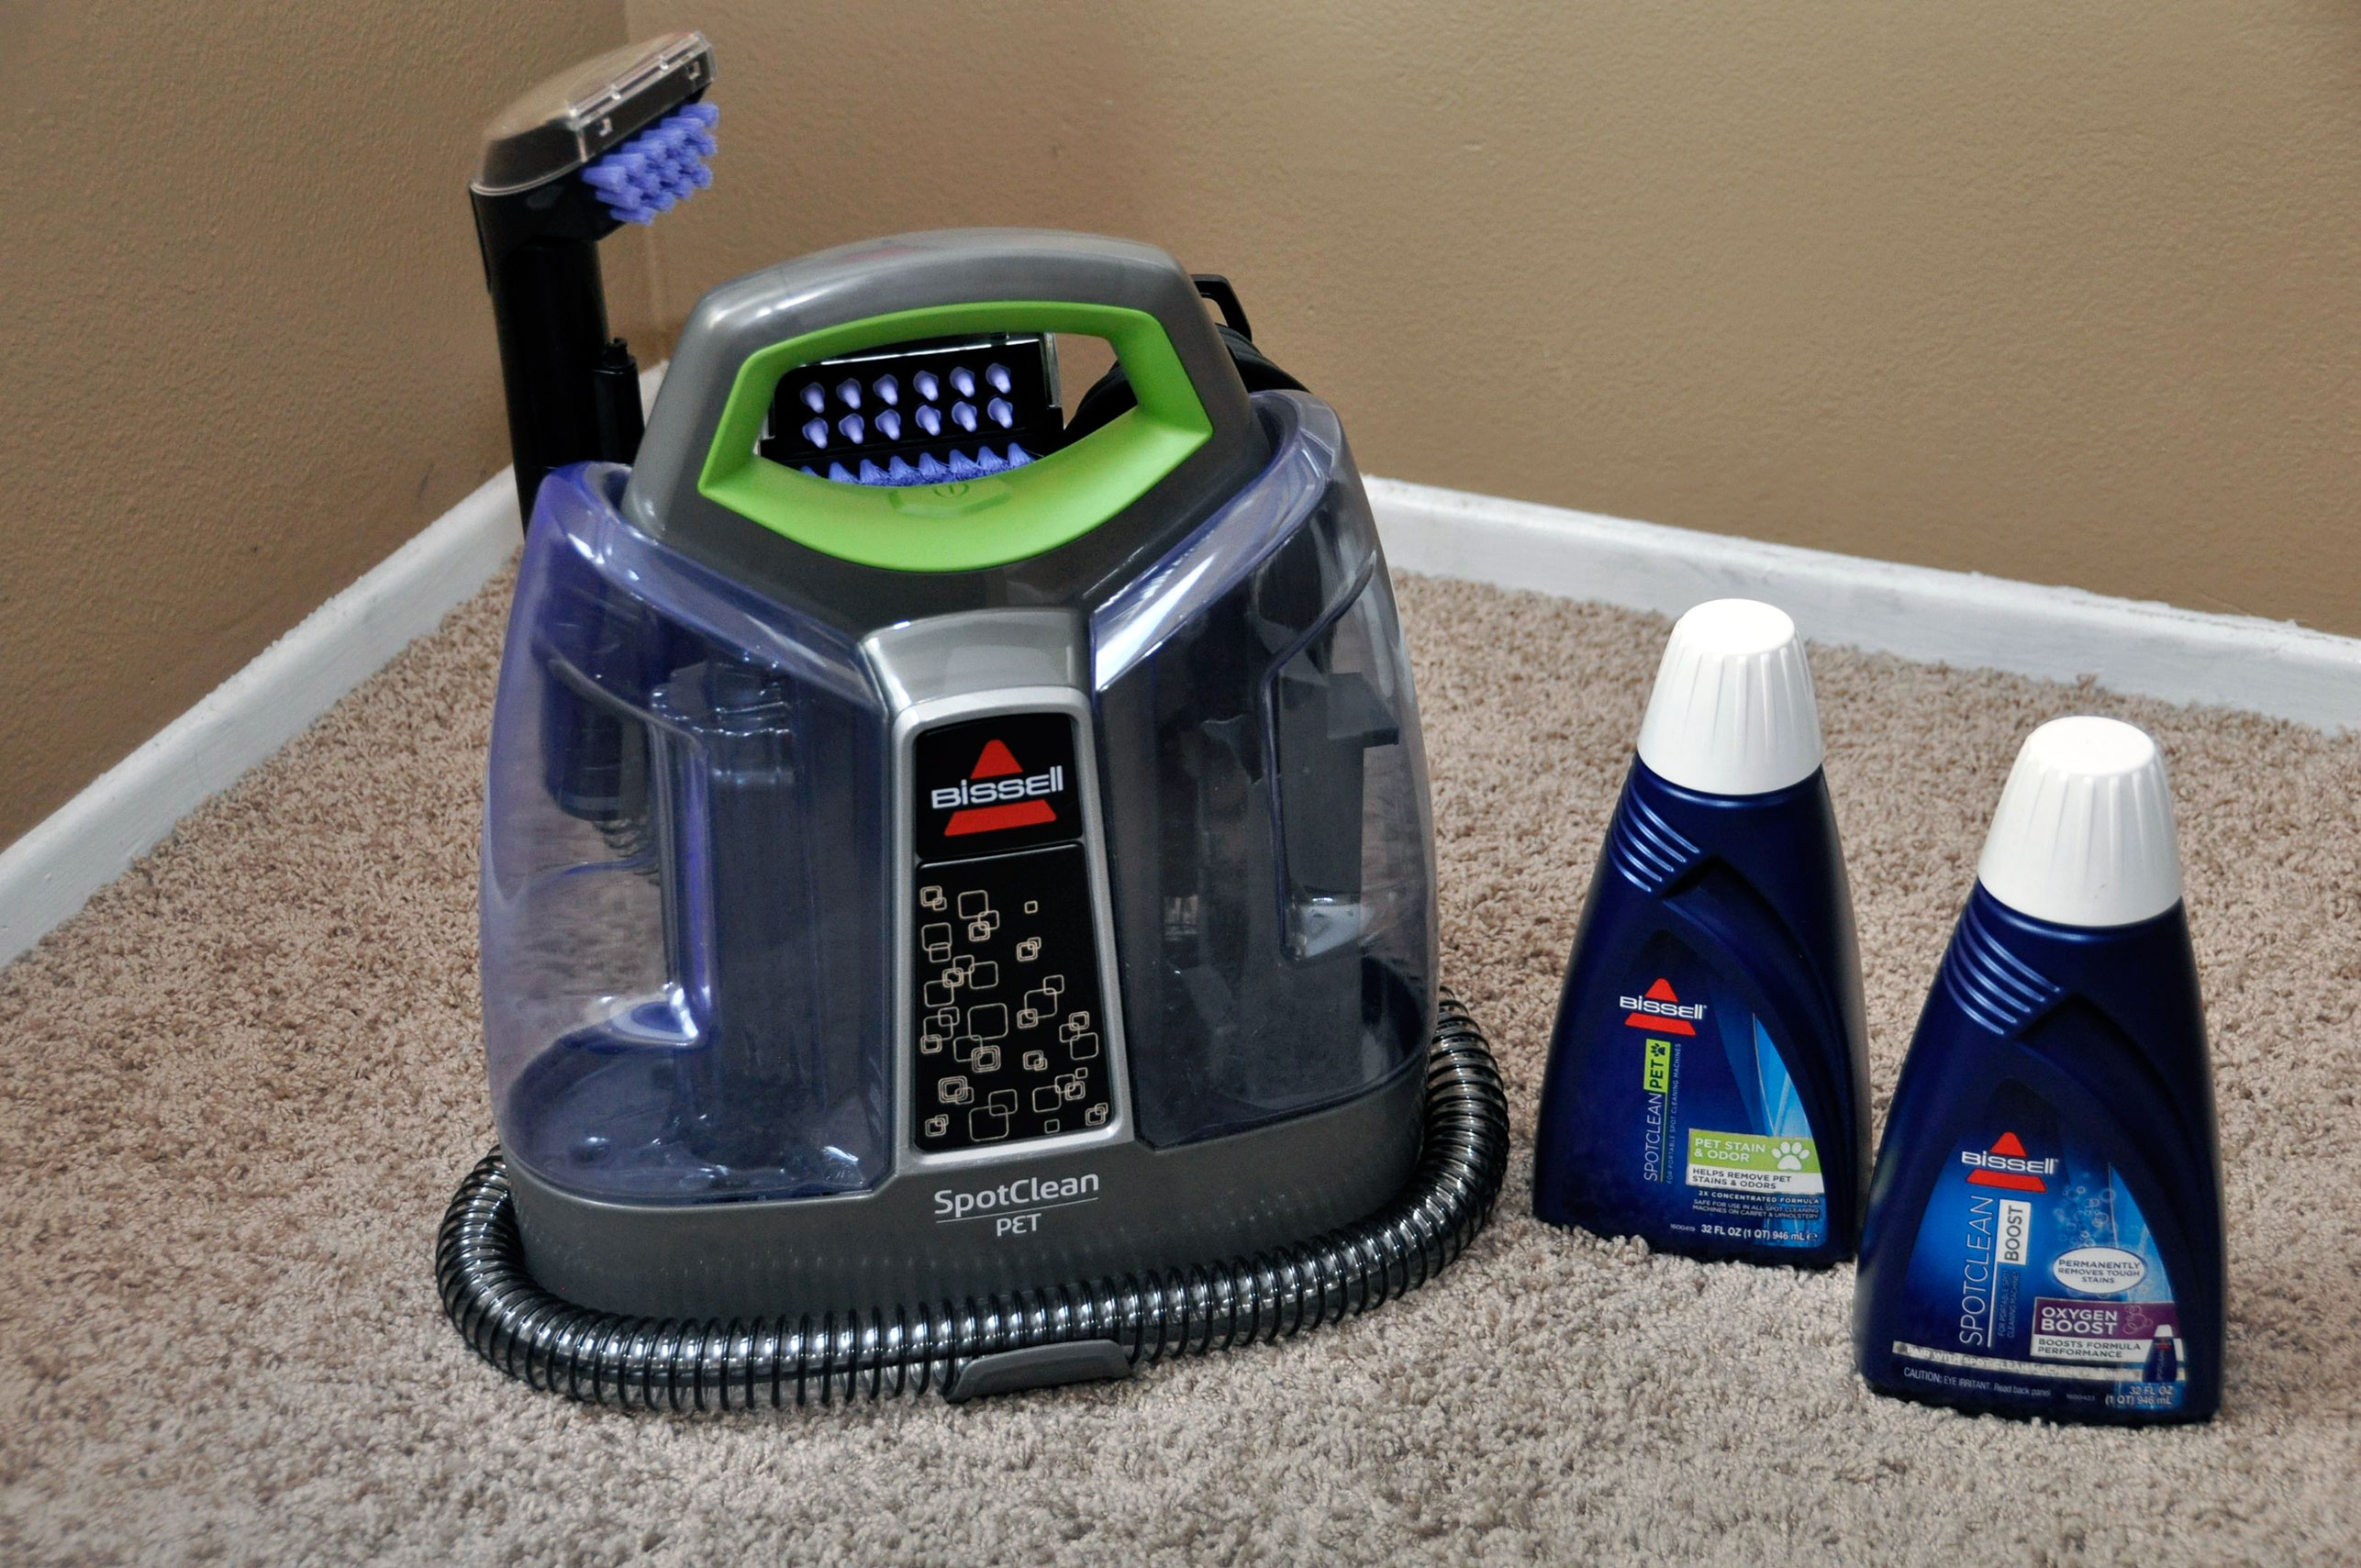 Bissell S Spotclean Complete Pet Portable Carpet Cleaner